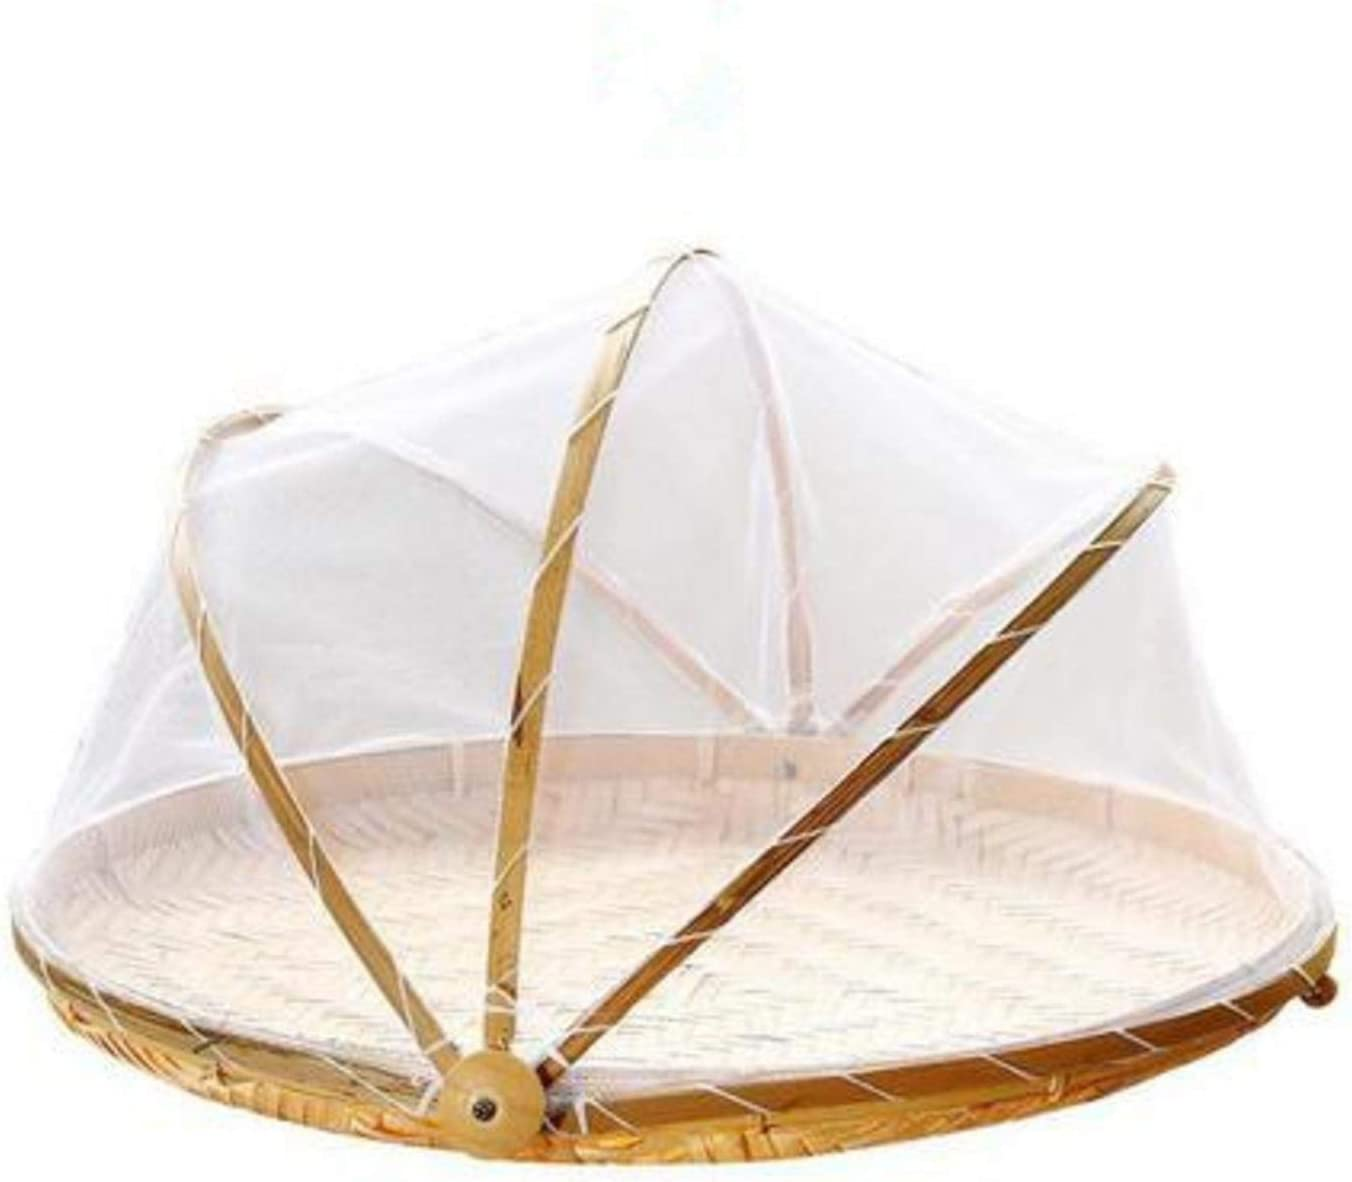 Bamboo Woven Rectangular Food Tent and Plate Serving Cover Food Serving Tent Basket for Picnic Camping